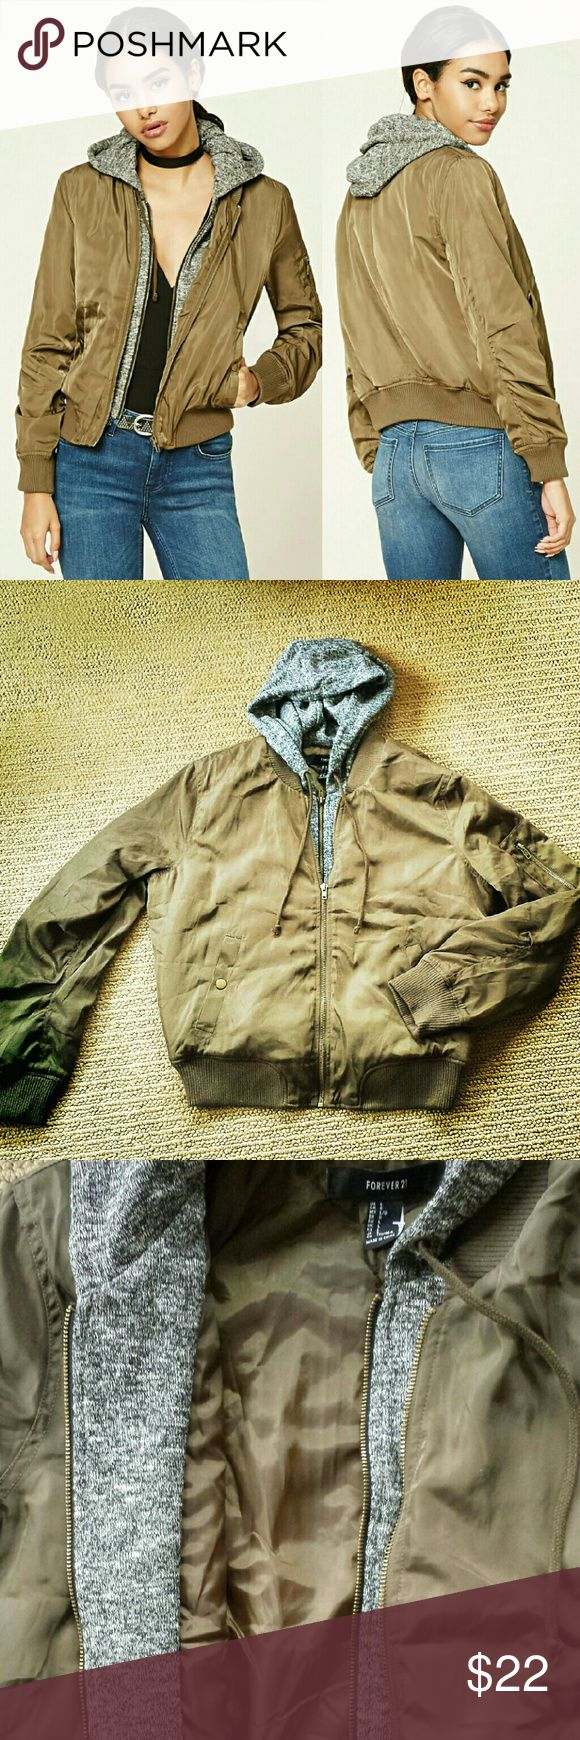 f21 Hooded Bomber Jacket Olive green padded bomber jacket with faux-layered marled knit hoodie buttoned front pockets, one on-sleeve zip pocket, and interior and exterior zipper layers  length: 23in chest: 42in waist: 38in sleeve length: 23.5in Forever 21 Jackets & Coats